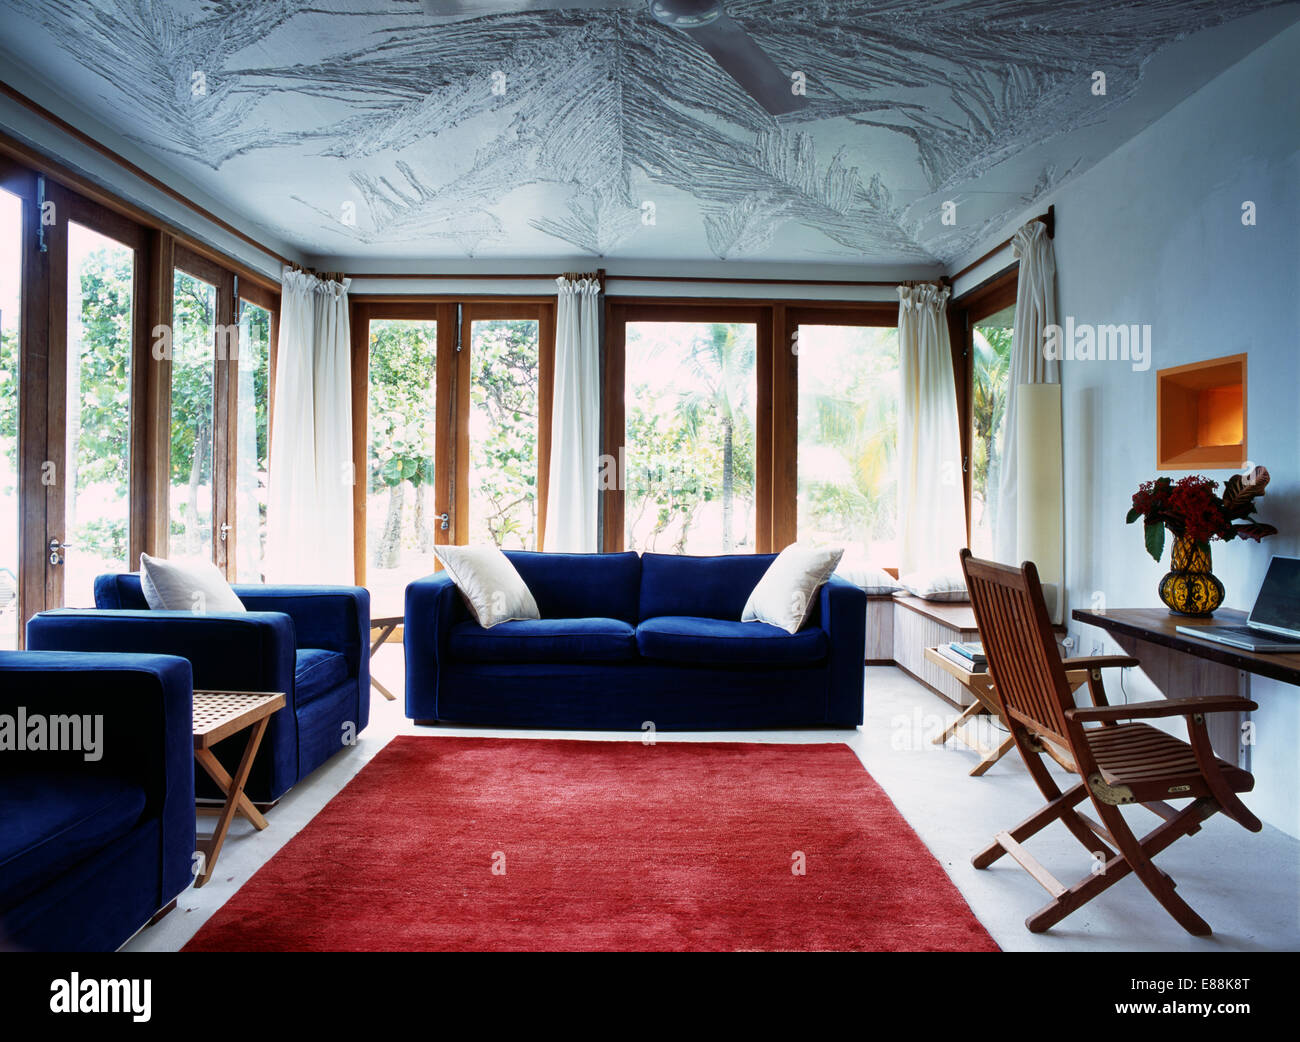 Blue Sofas And Large Red Rug In Modern White Caribbean Living Room With  Textured Ceiling Part 94